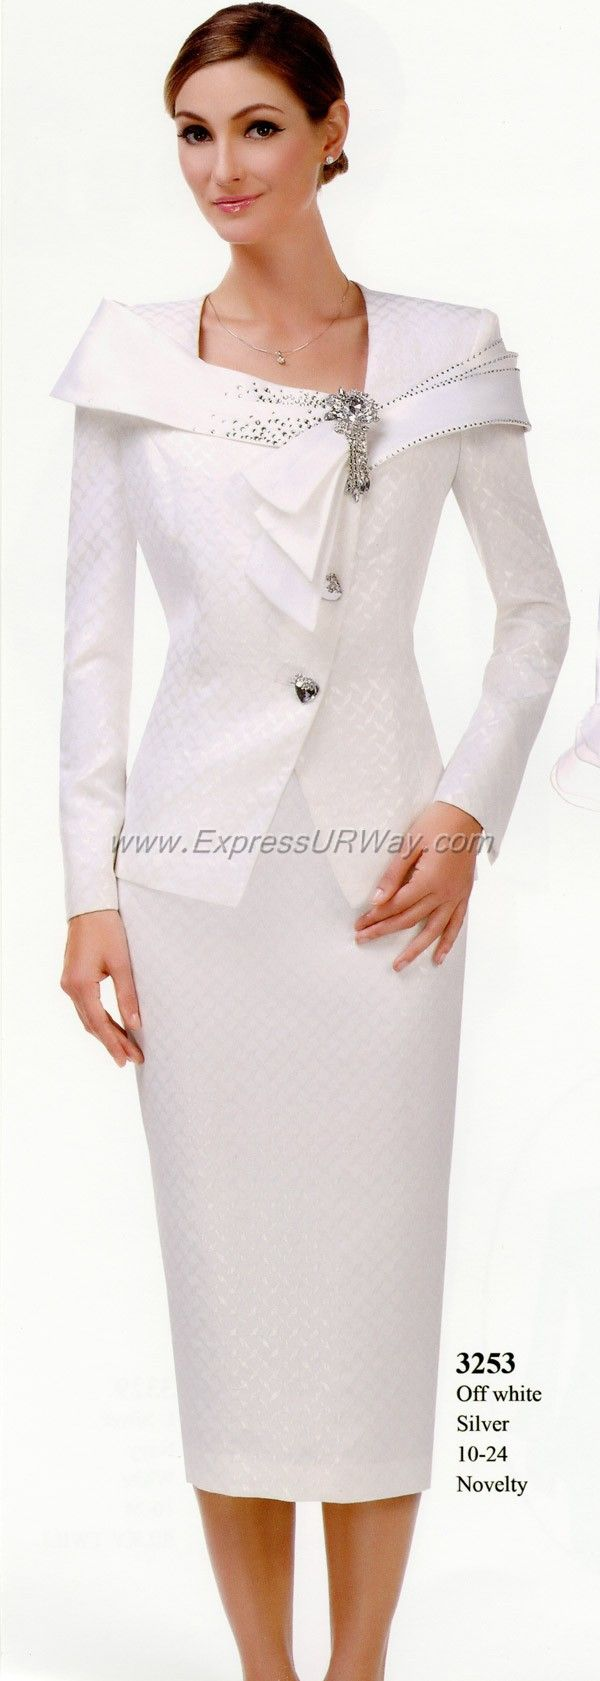 Serafina Womens Suits for Spring 2014 - www.ExpressURWay.com - Serafina,  Serafina